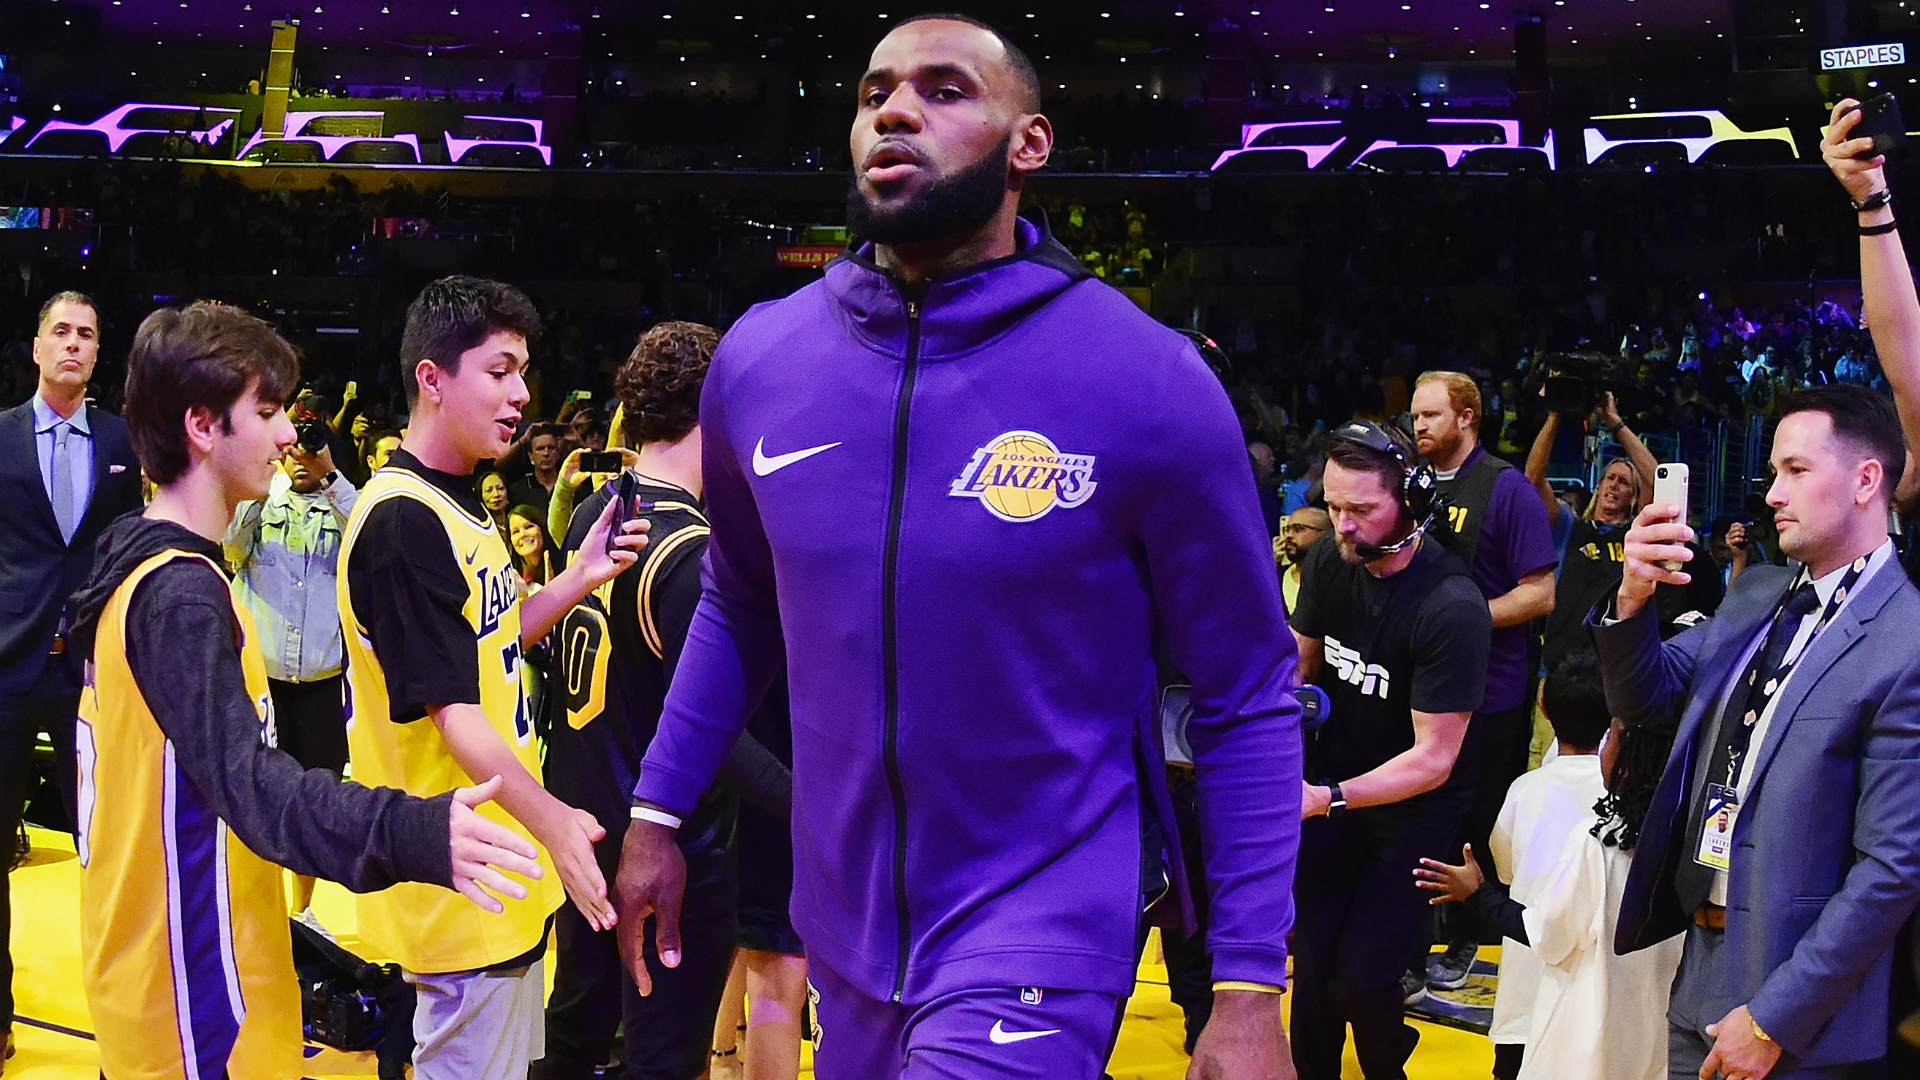 Terence Nance is excited about the potential of 'Space Jam 2', which will feature NBA great LeBron James.